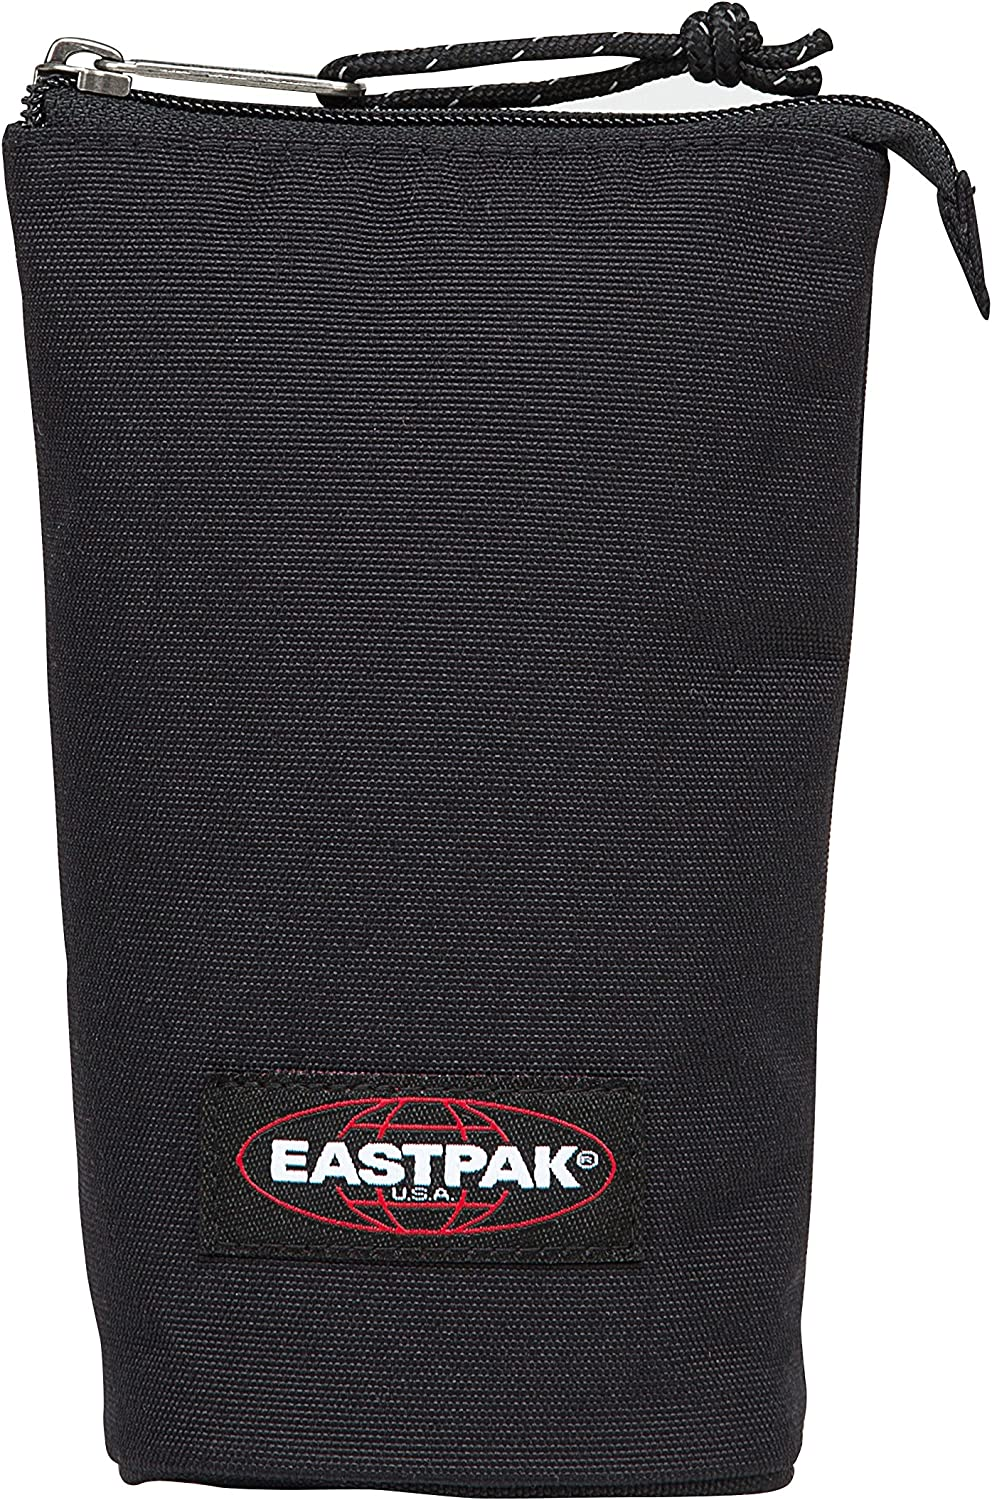 Eastpak Estuche Oval UP Black EK82C 008: Amazon.es: Equipaje